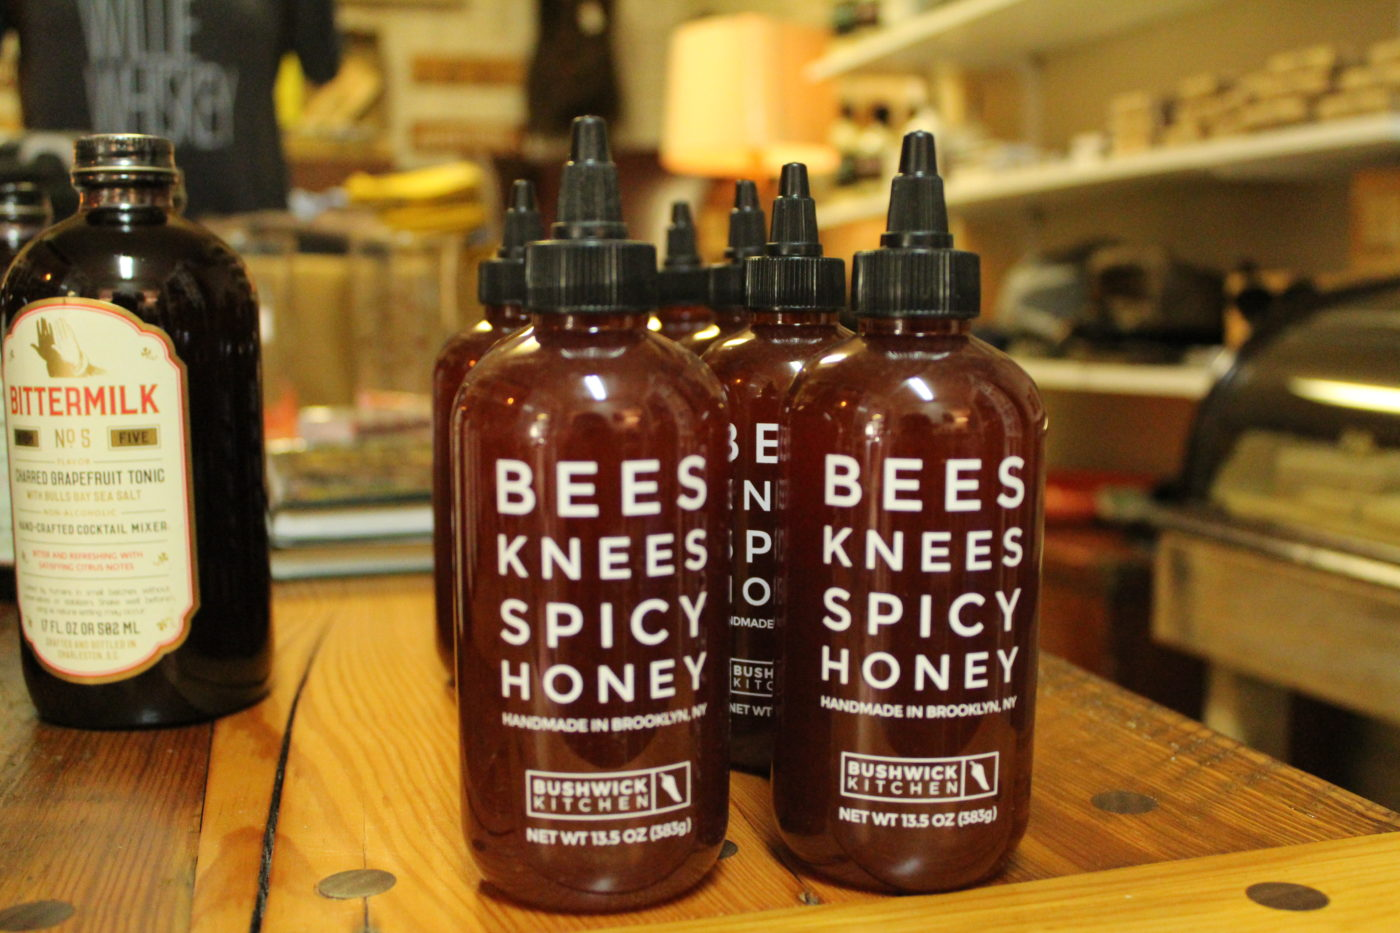 Bees Knees Spicy Honey from Bushwick Kitchen one of the many products carried in Refinery423 Mercantile.